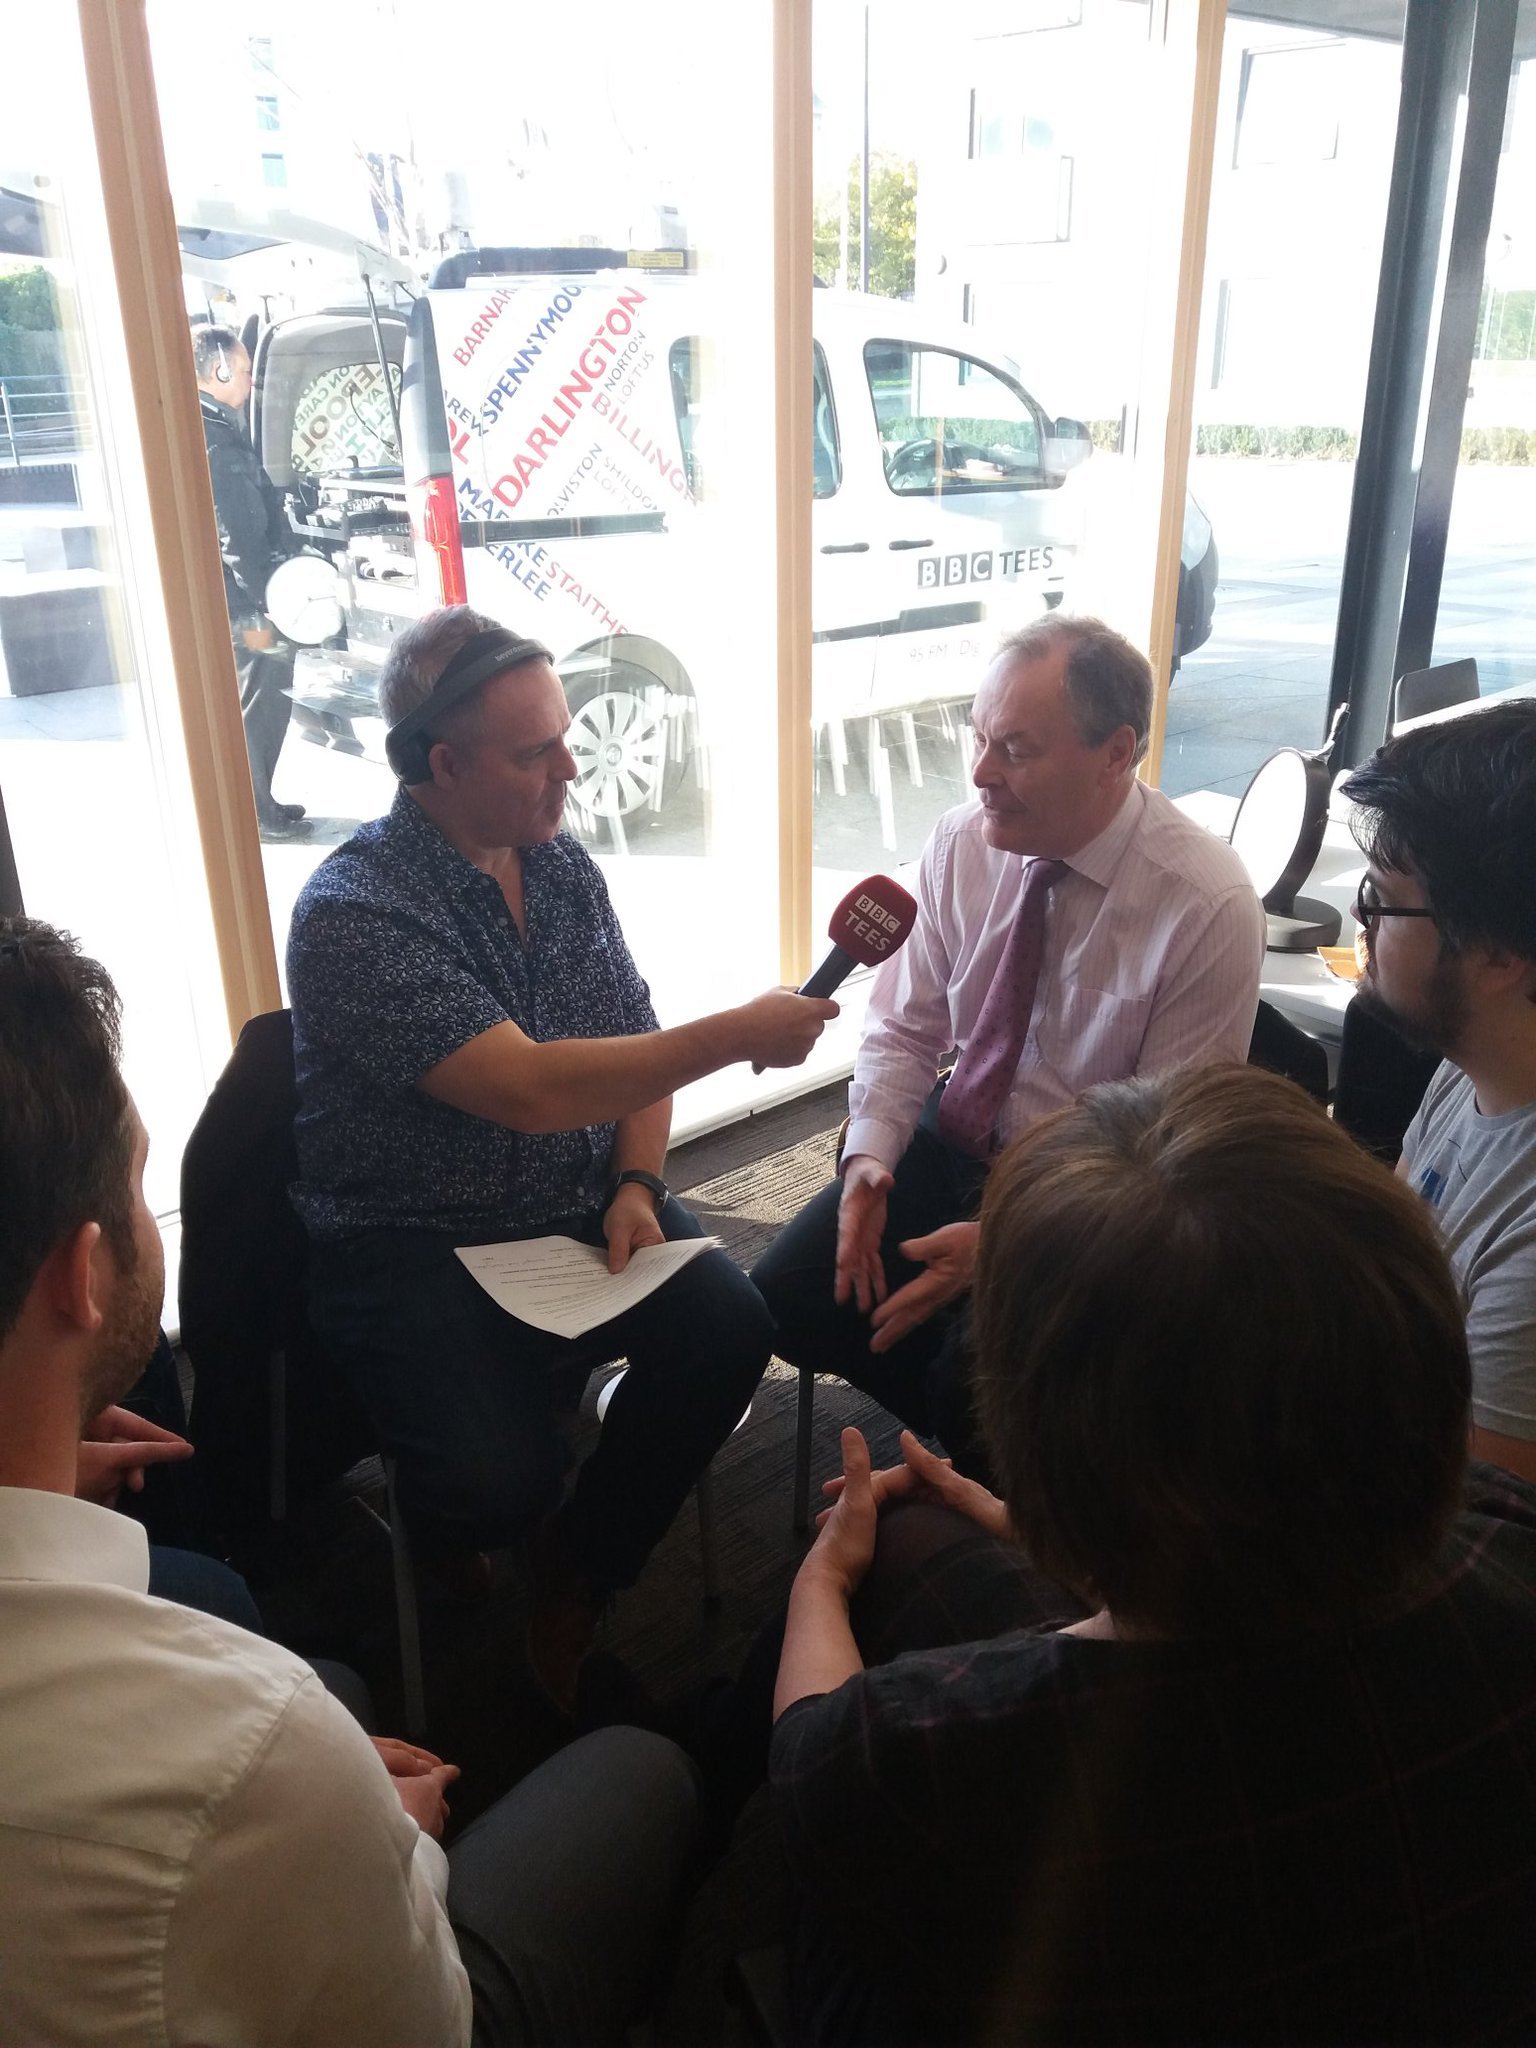 – Middlesbrough Mayor Dave Budd (R) being interviewed by BBC Tees' Mike Parr at Boho 1 alongside digital business leaders.